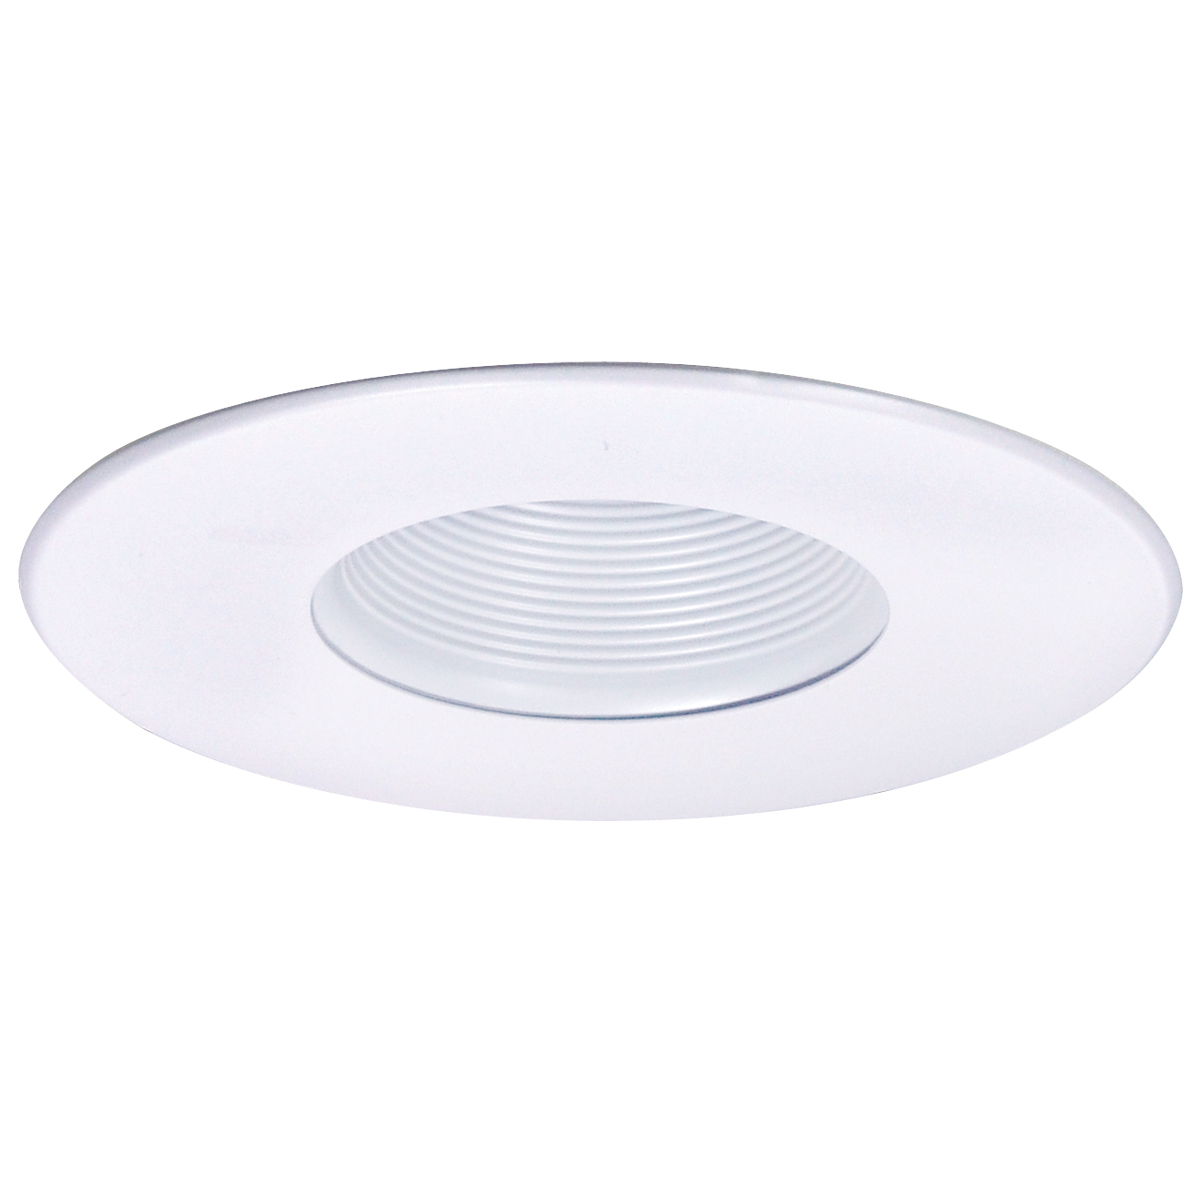 NOR NL-641W 6-IN DESIGNER STEPPED BAFFLE TRIM WHITE